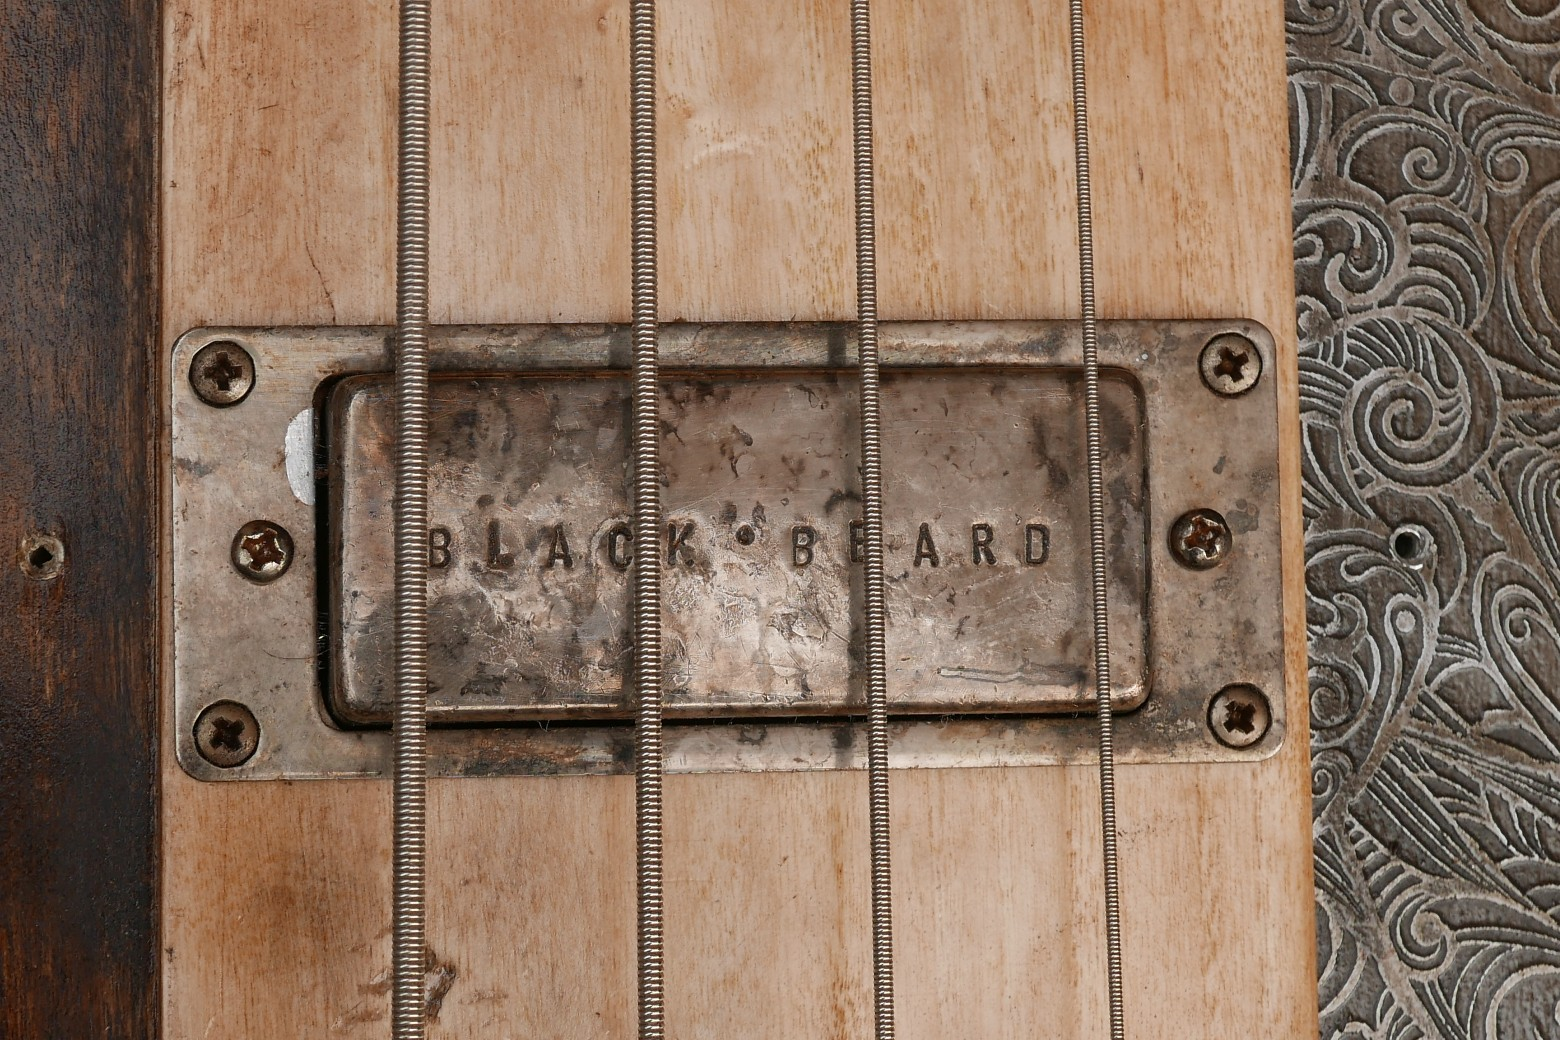 thunderbird bass minihumbucker pickup